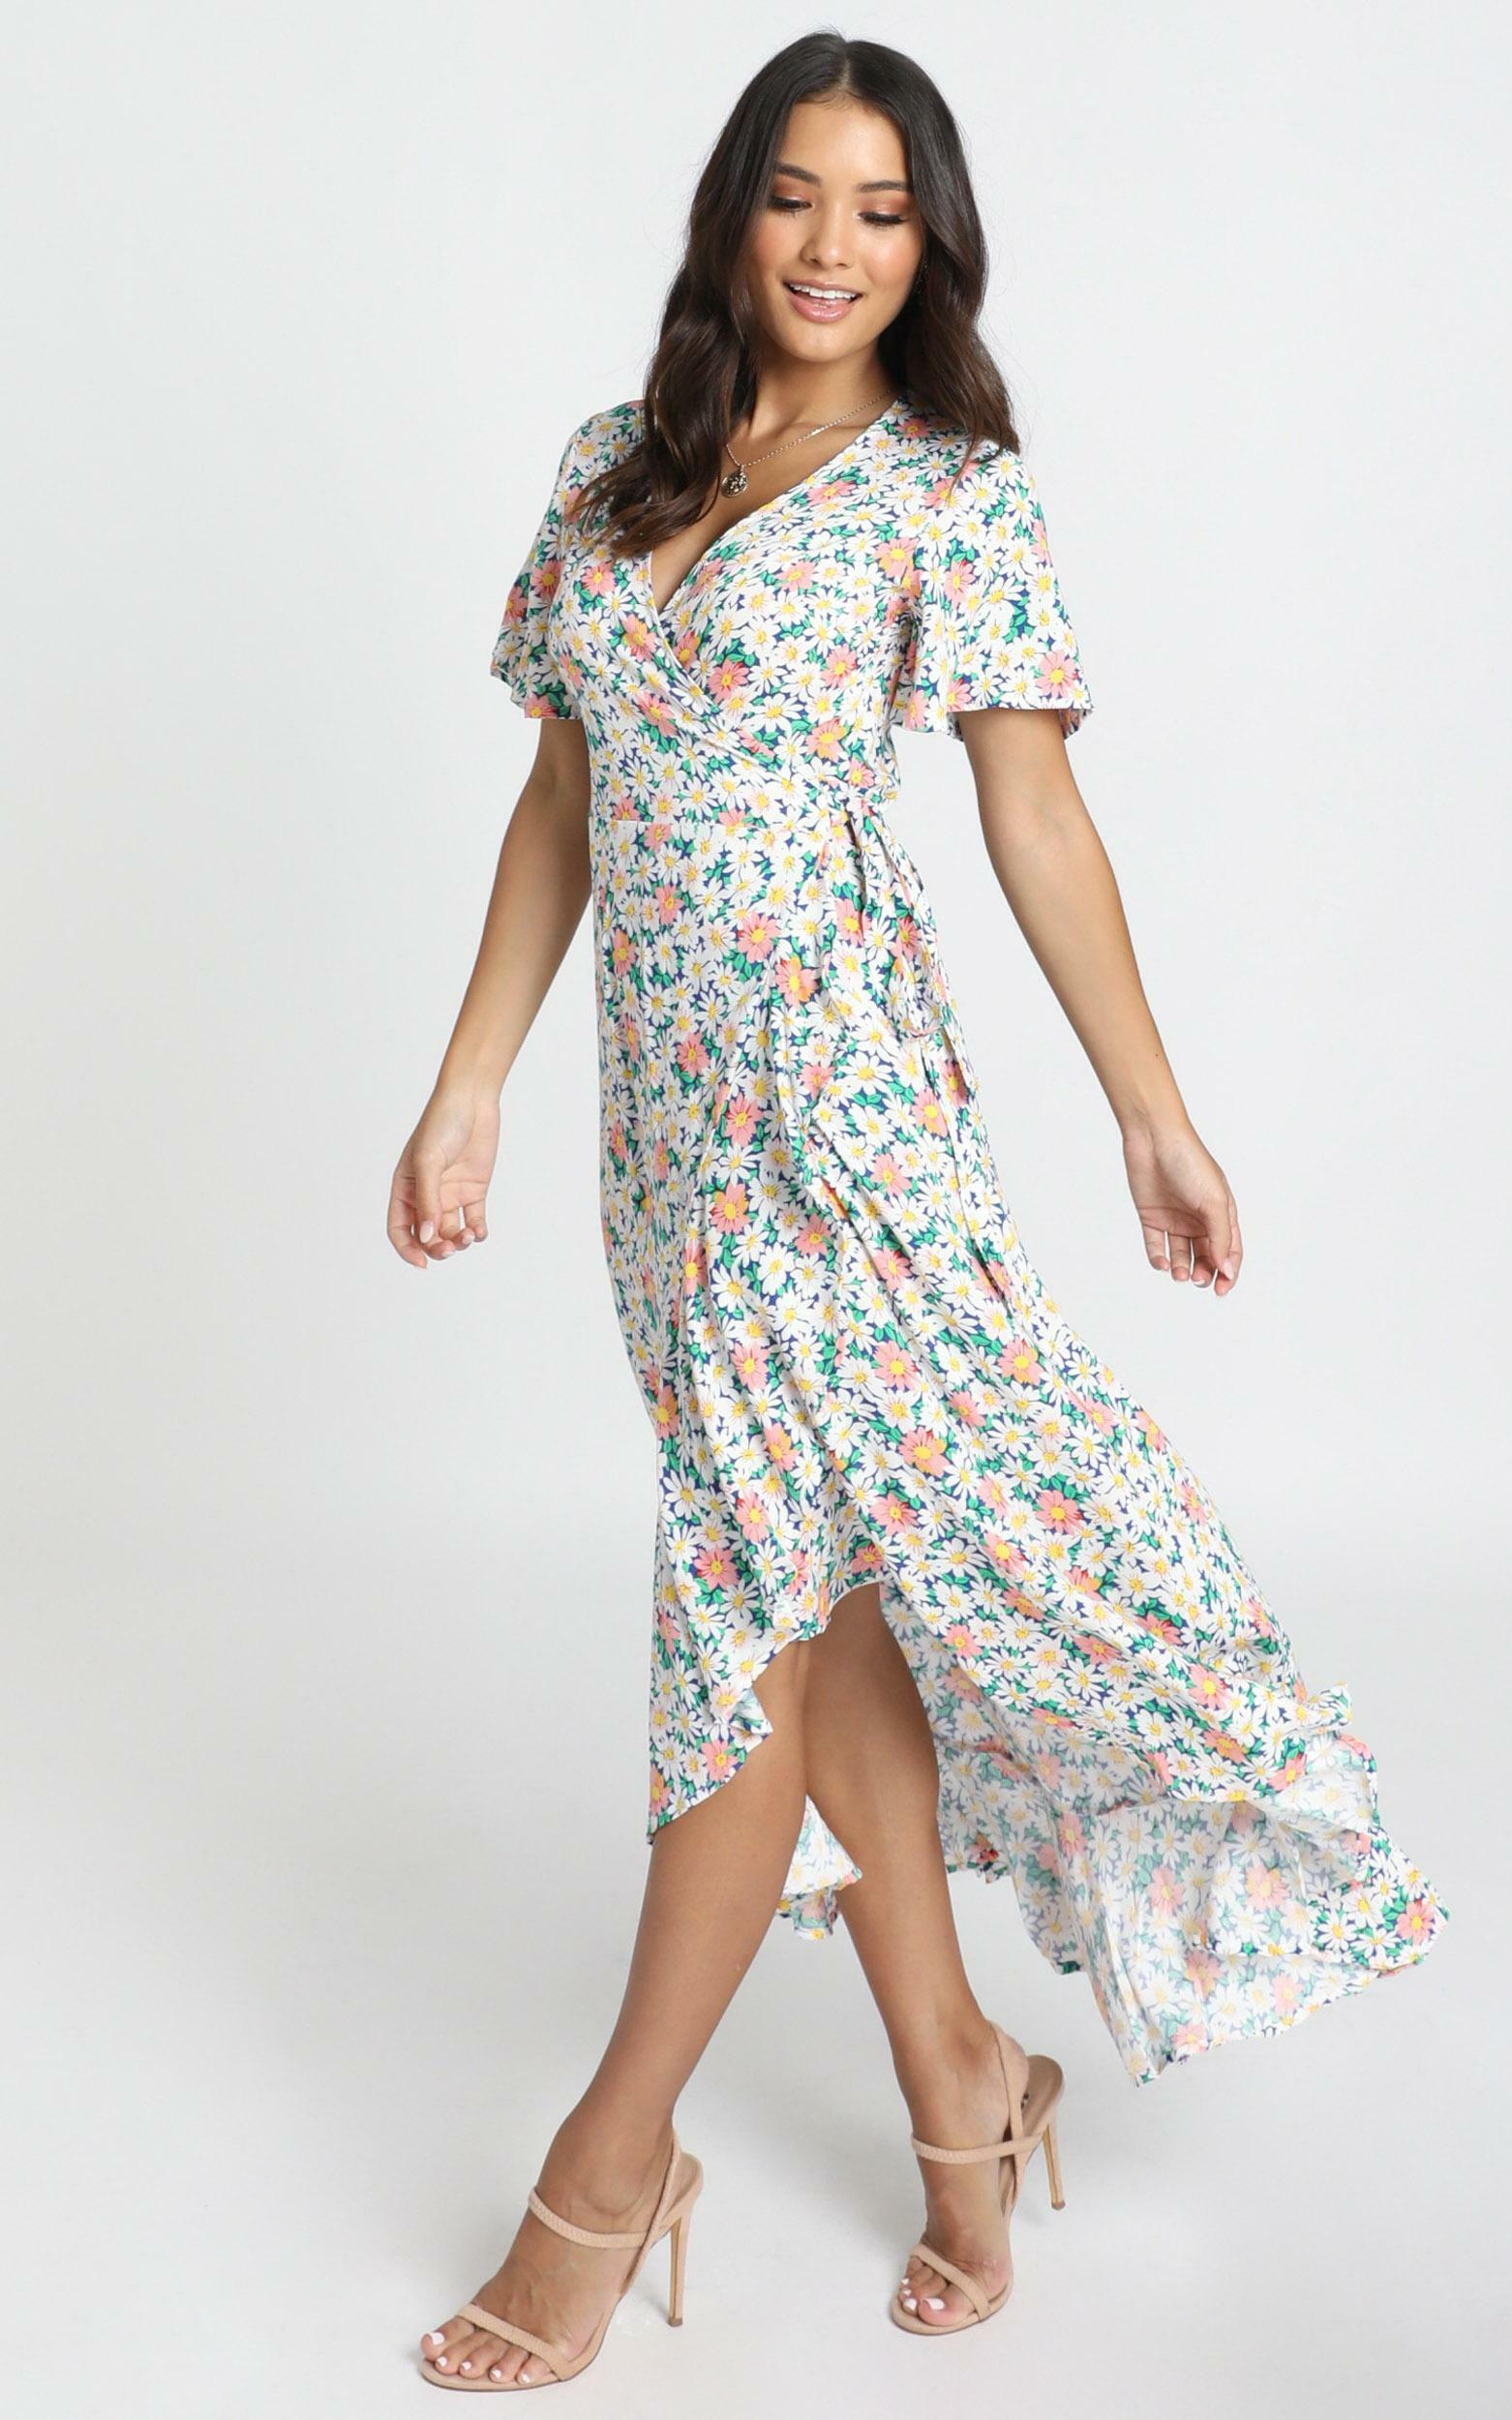 Lavish Life Dress in multi floral - 6 (XS), Green, hi-res image number null